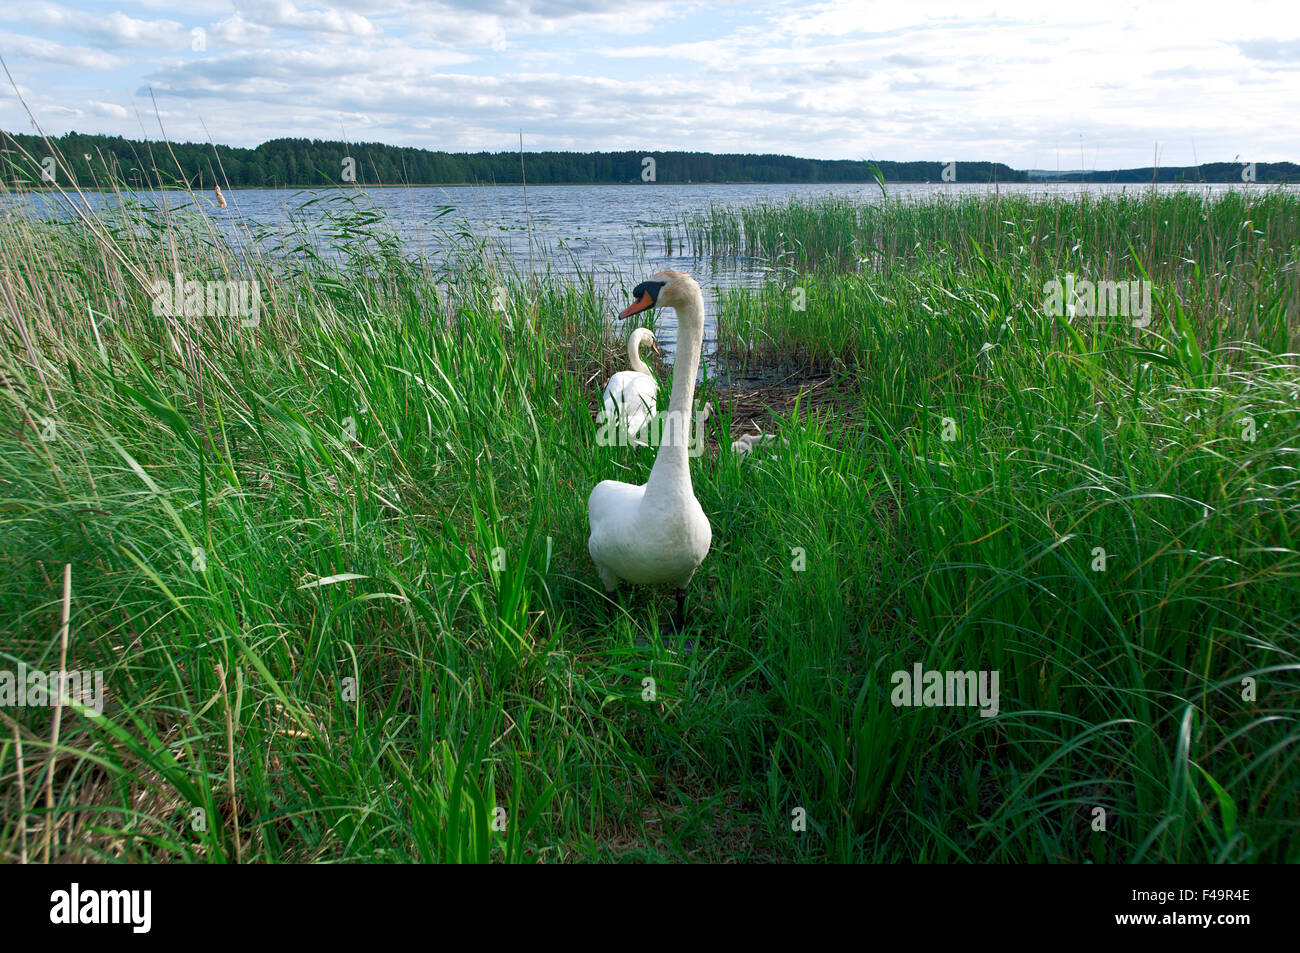 dissatisfied swan - Stock Image